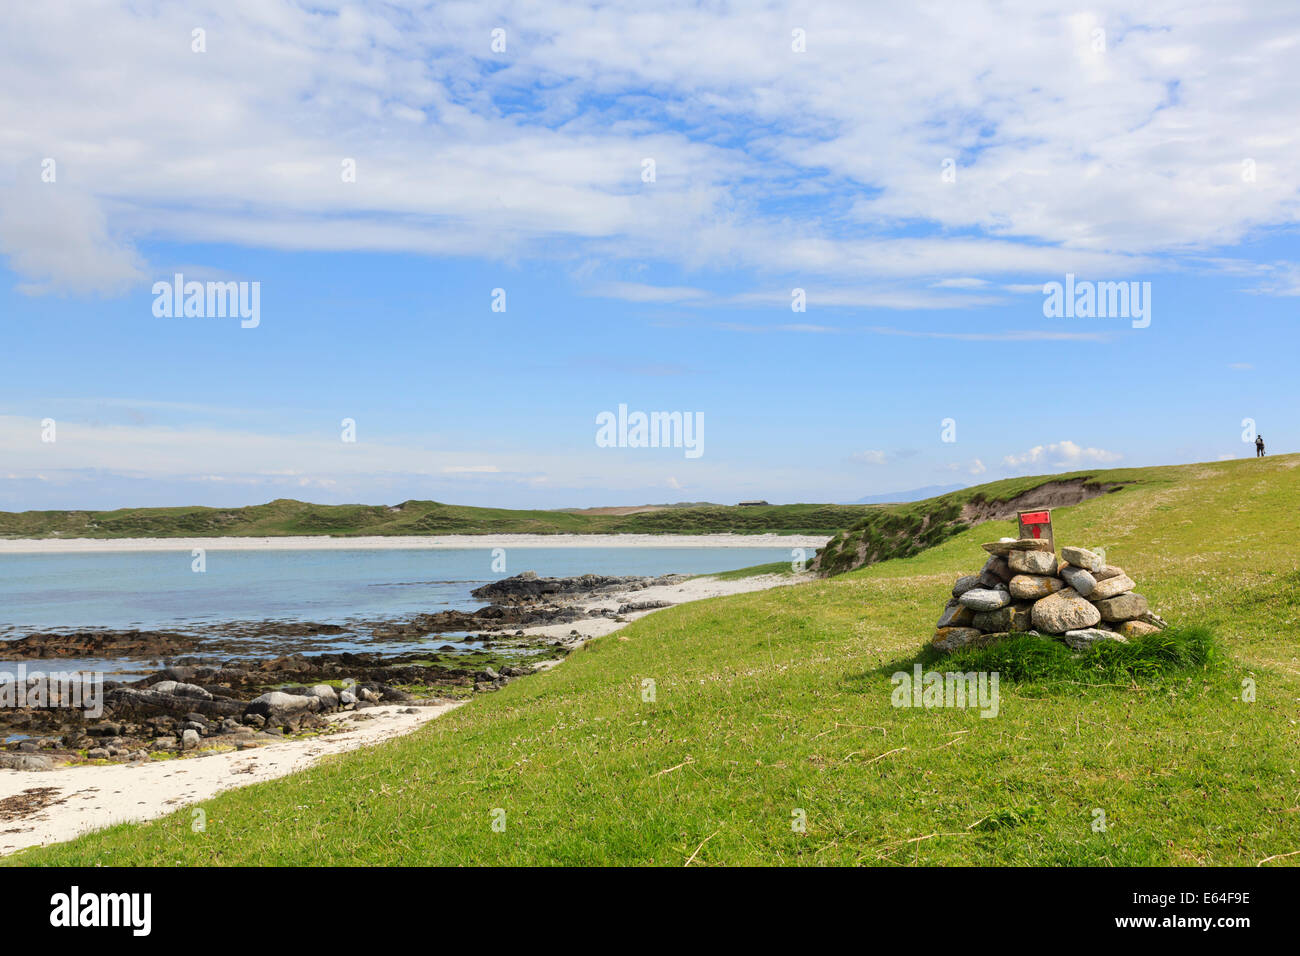 Path marker cairn on west coast trail on Balranald RSPB Nature Reserve, North Uist, Outer Hebrides, Western Isles, - Stock Image